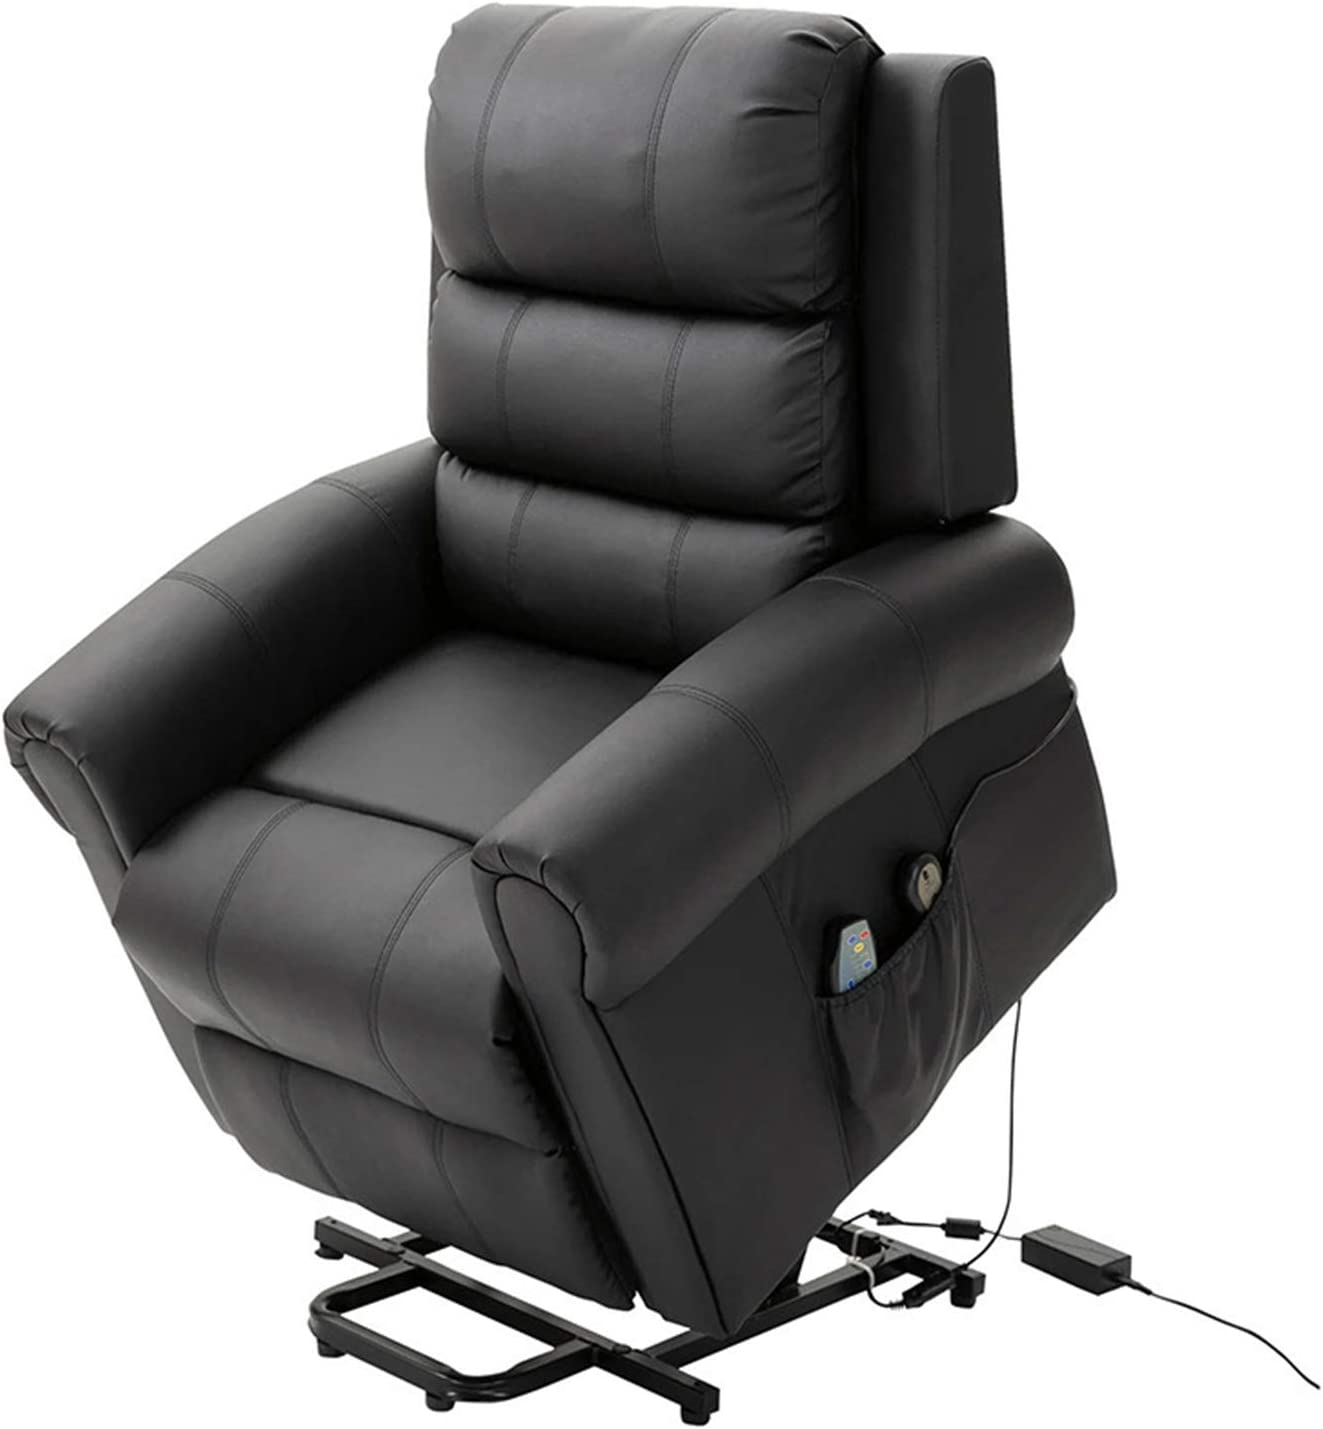 WSN Electric Power Lift Al sold out. Recliner Vibration for Elderly Chair unisex El